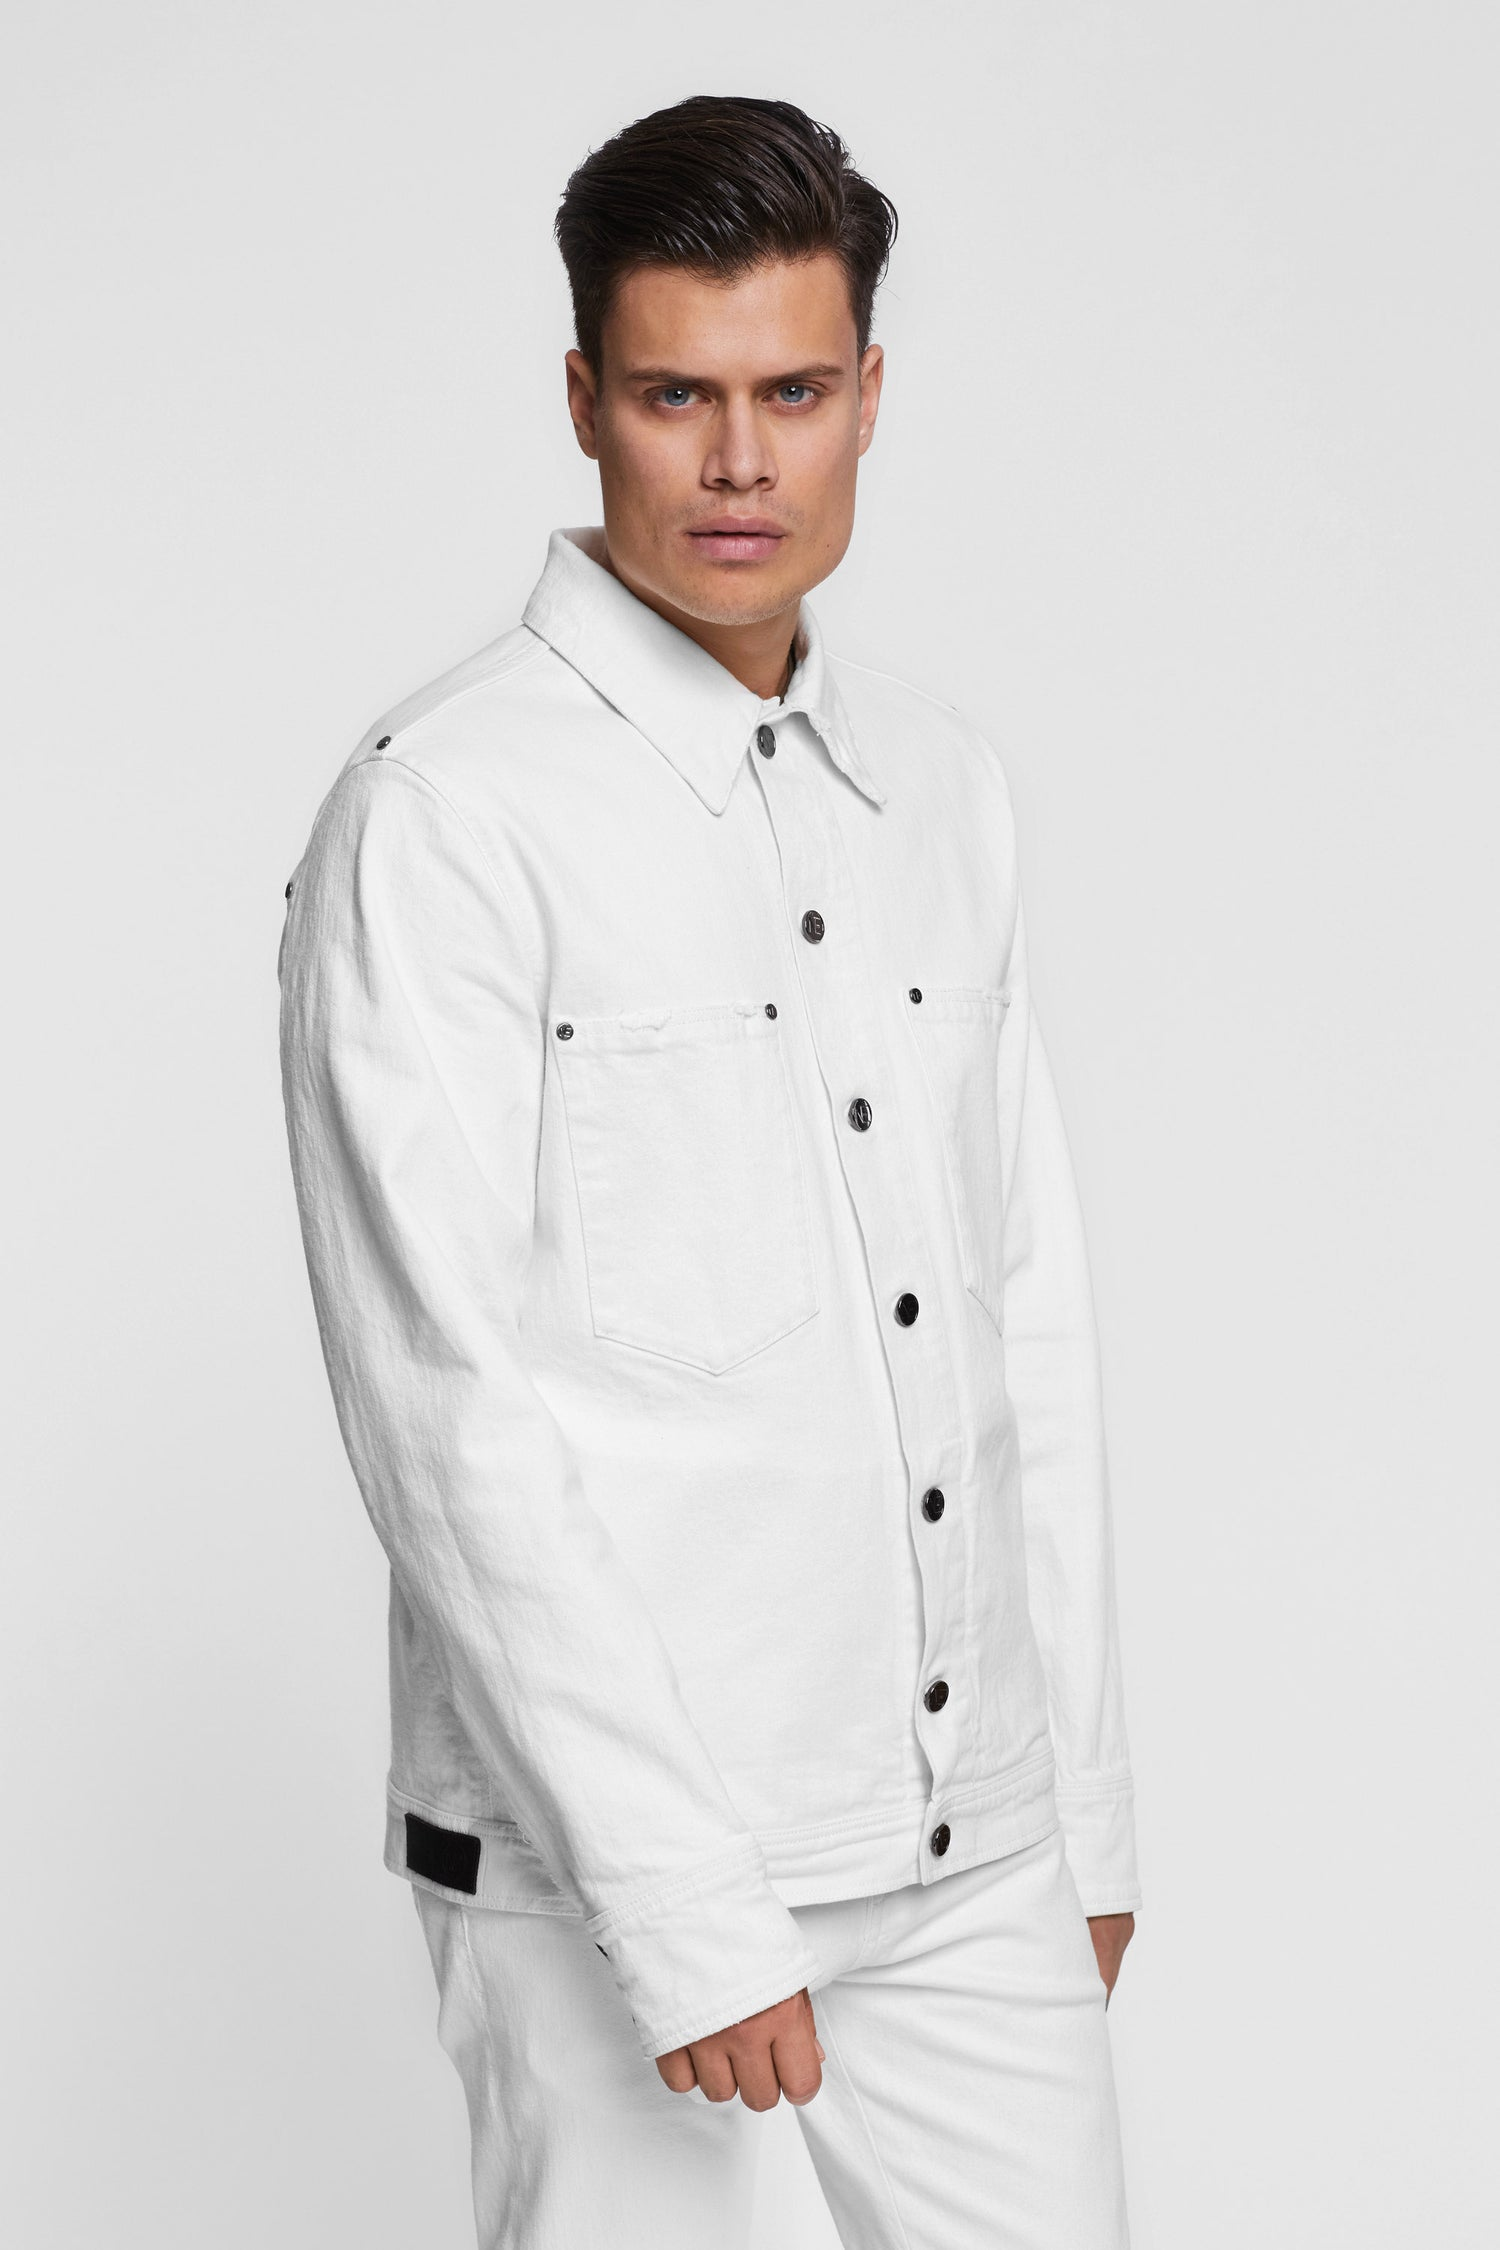 https://cdn.shopify.com/s/files/1/2973/0680/files/mens_white_jacket.mp4?11295085260309446073